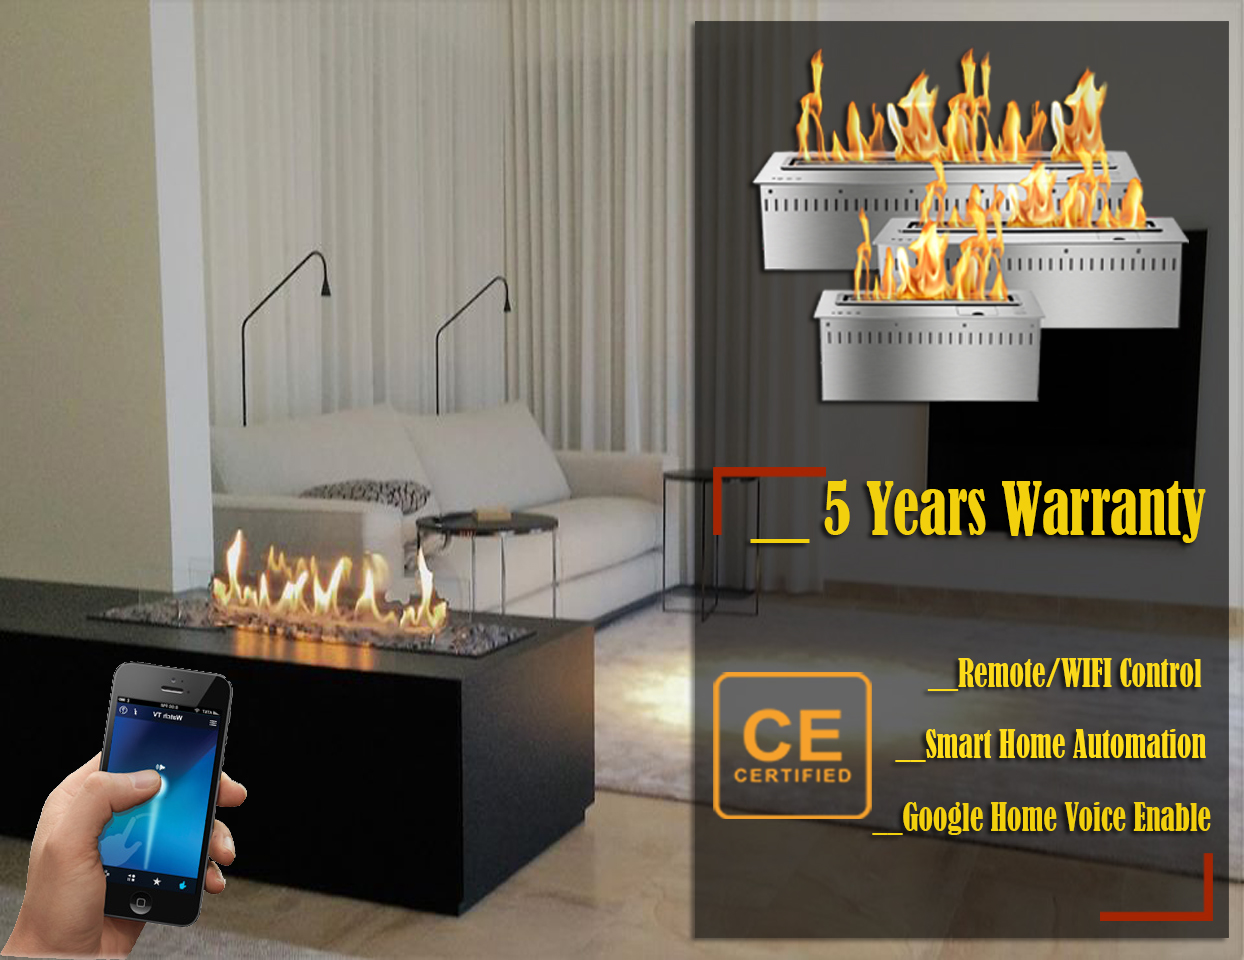 Hot Sale 48 Inches Knx Home Automation Fireplace Ethanol Electronic